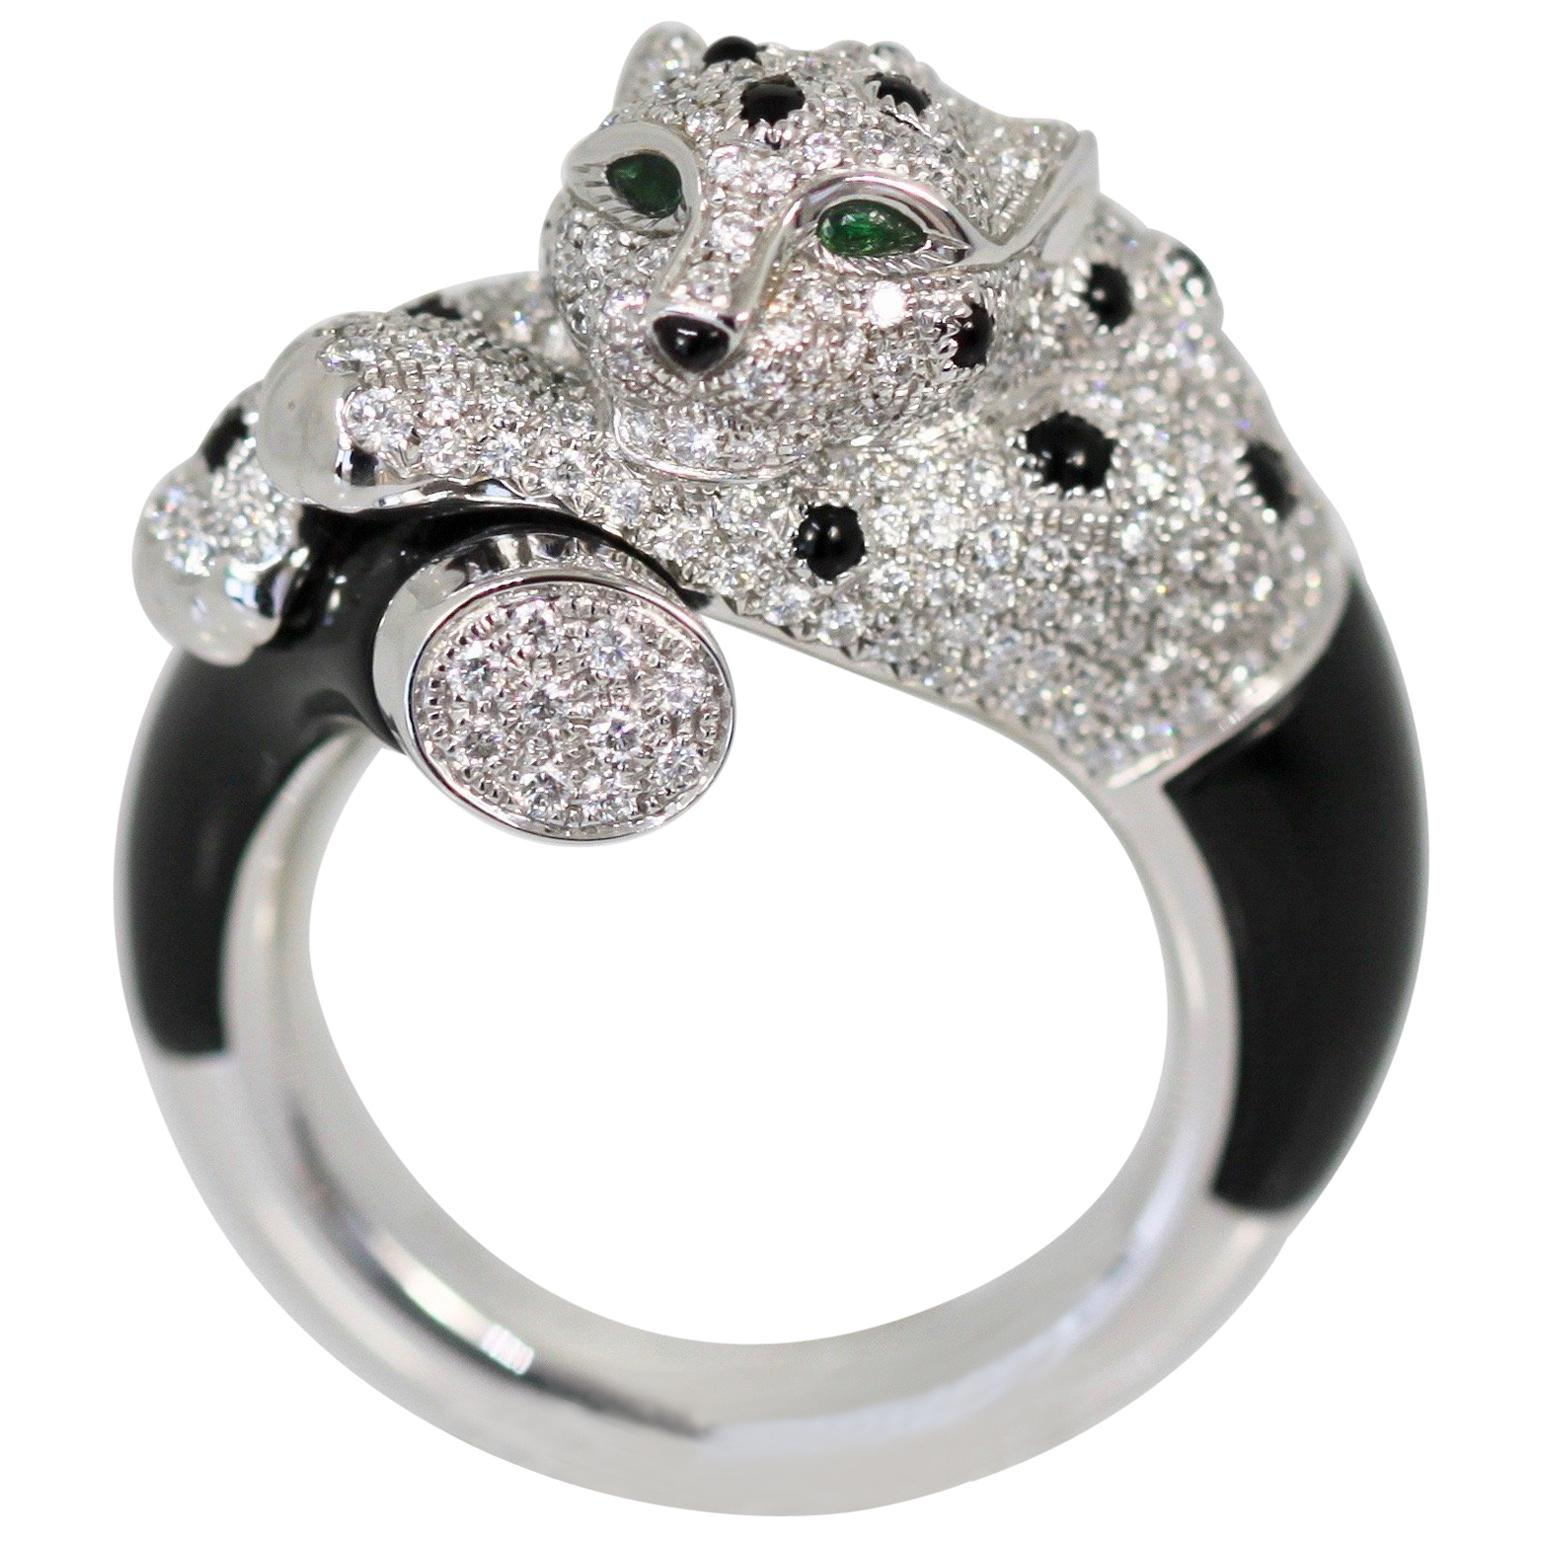 4952649672f18 Cartier Panther Ring, Diamonds, Emeralds and Onyx